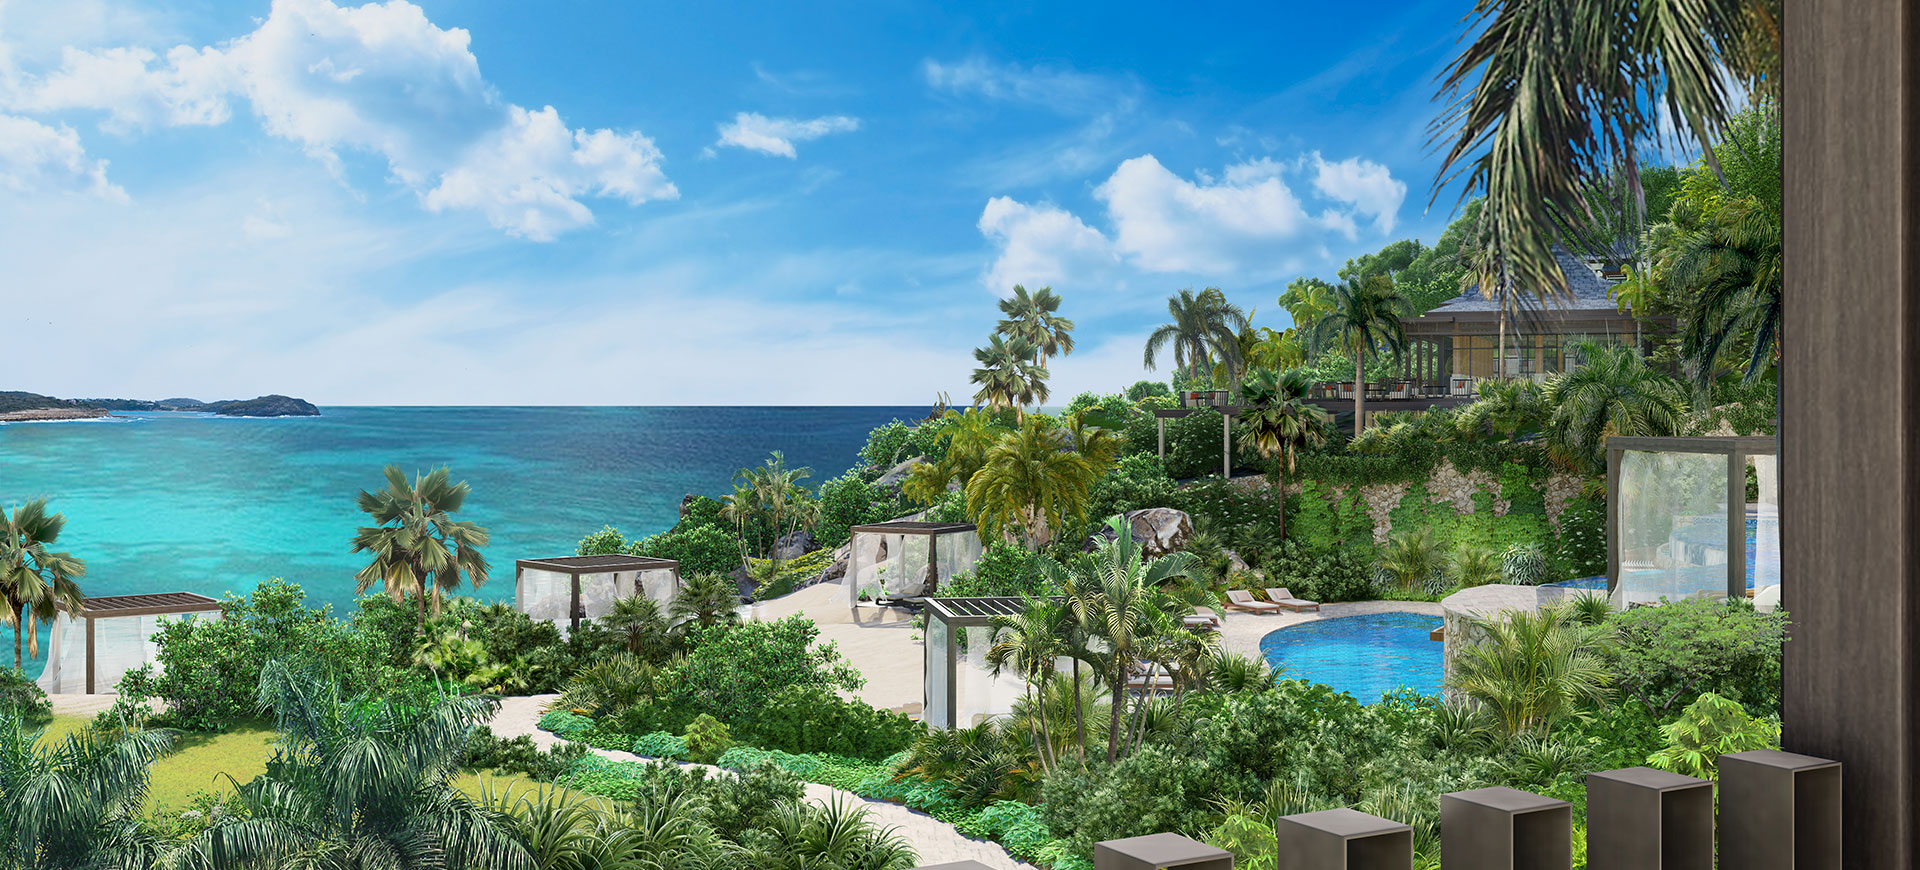 Half Moon Bay Antigua Launches Luxury Villas